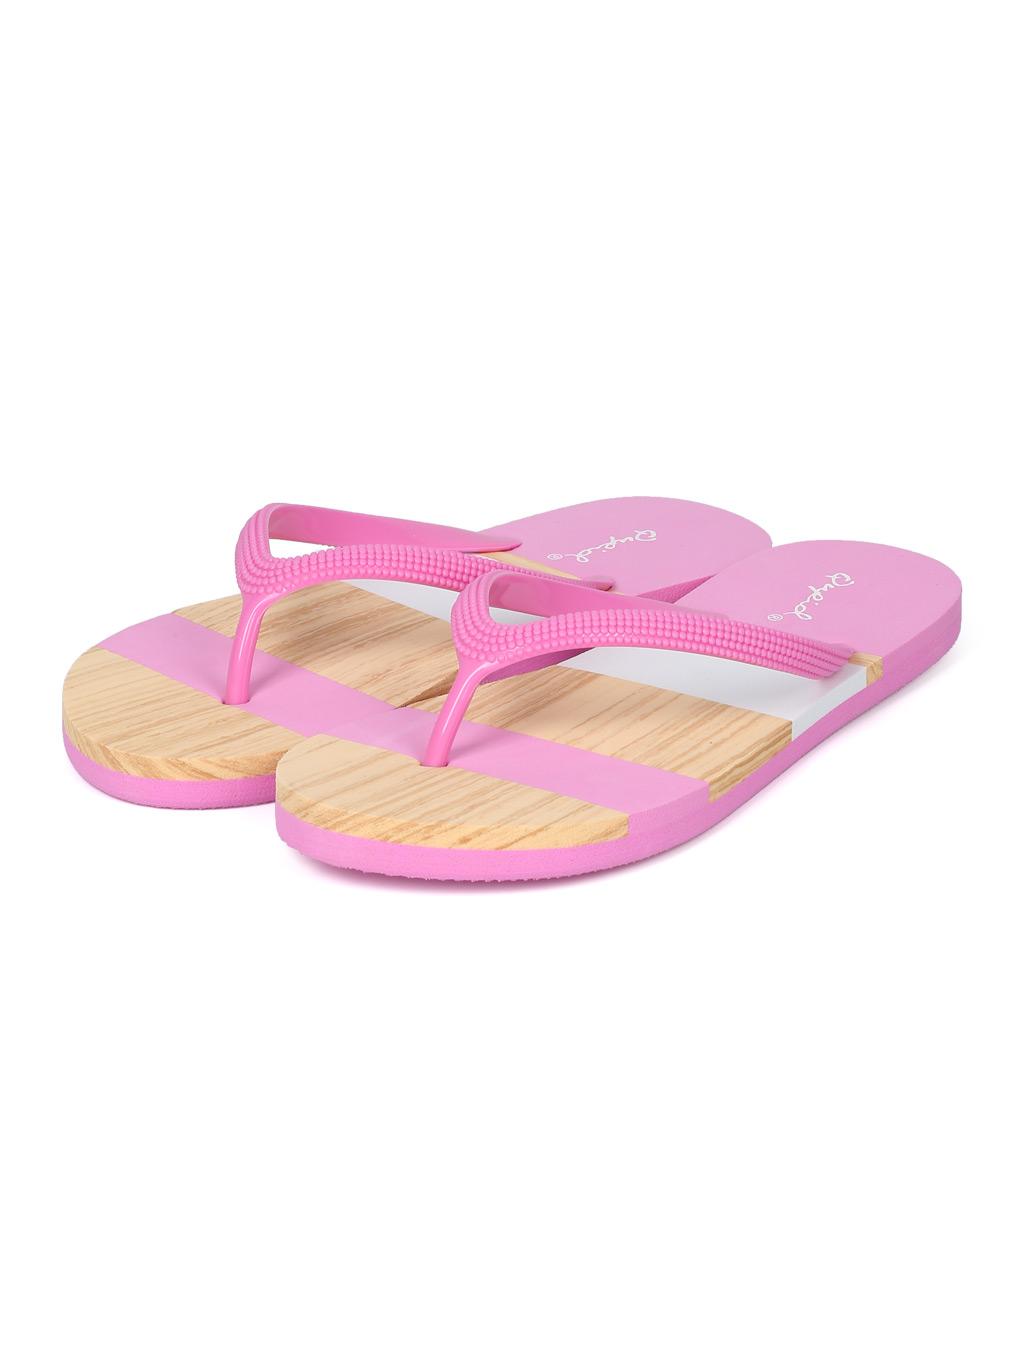 5a46e9e798be Alrisqd - Women PFC Faux Wood Striped Thong Sandal HH46 - Walmart.com